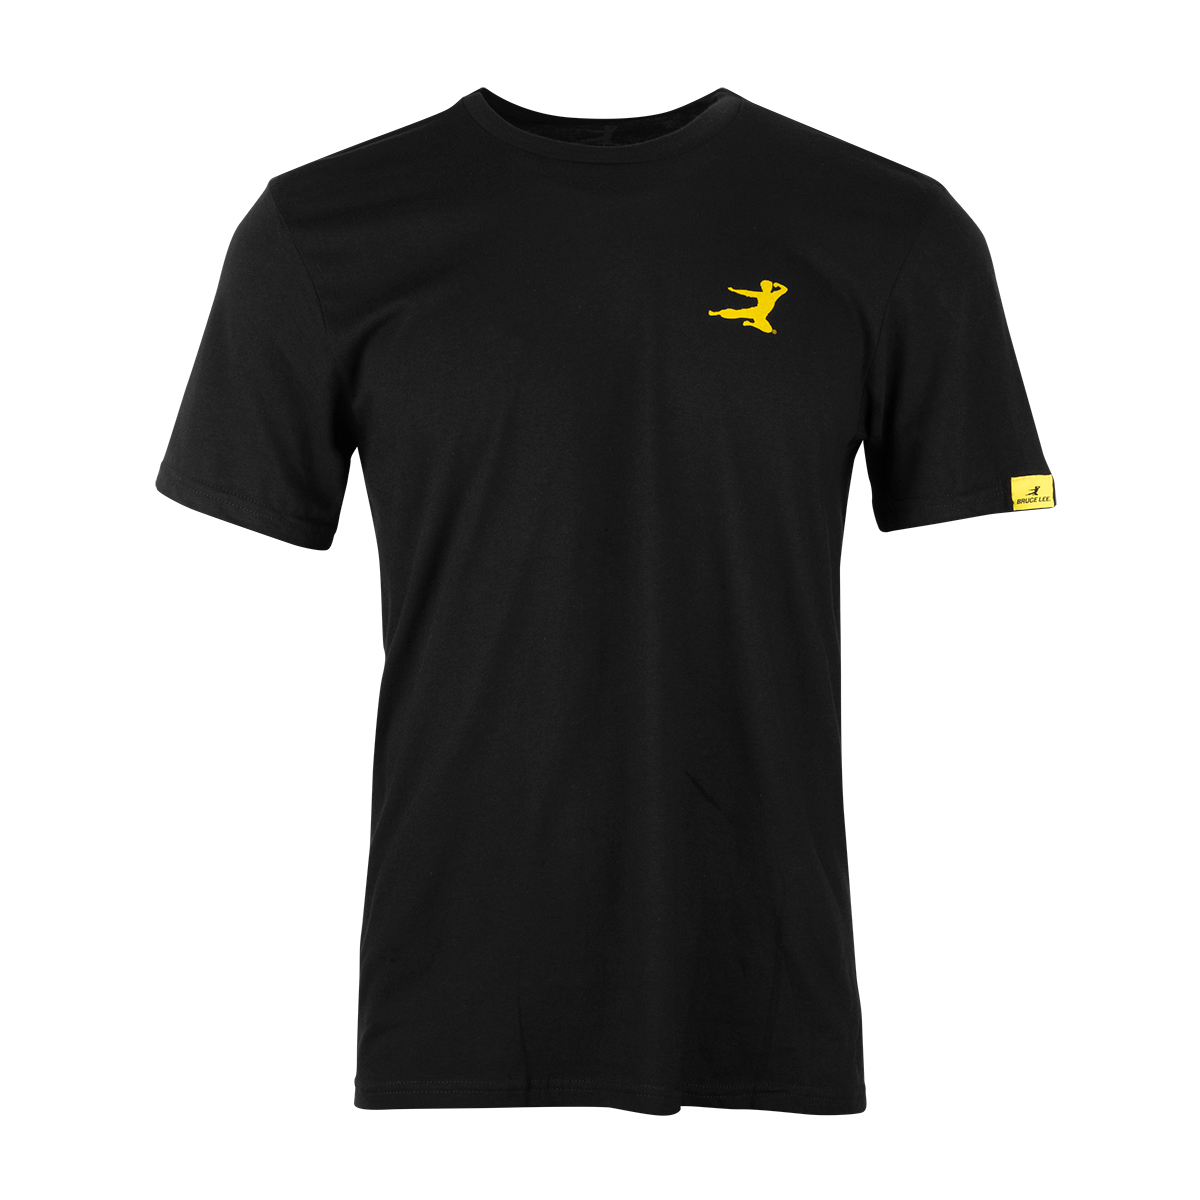 Flying Man SM T-shirt